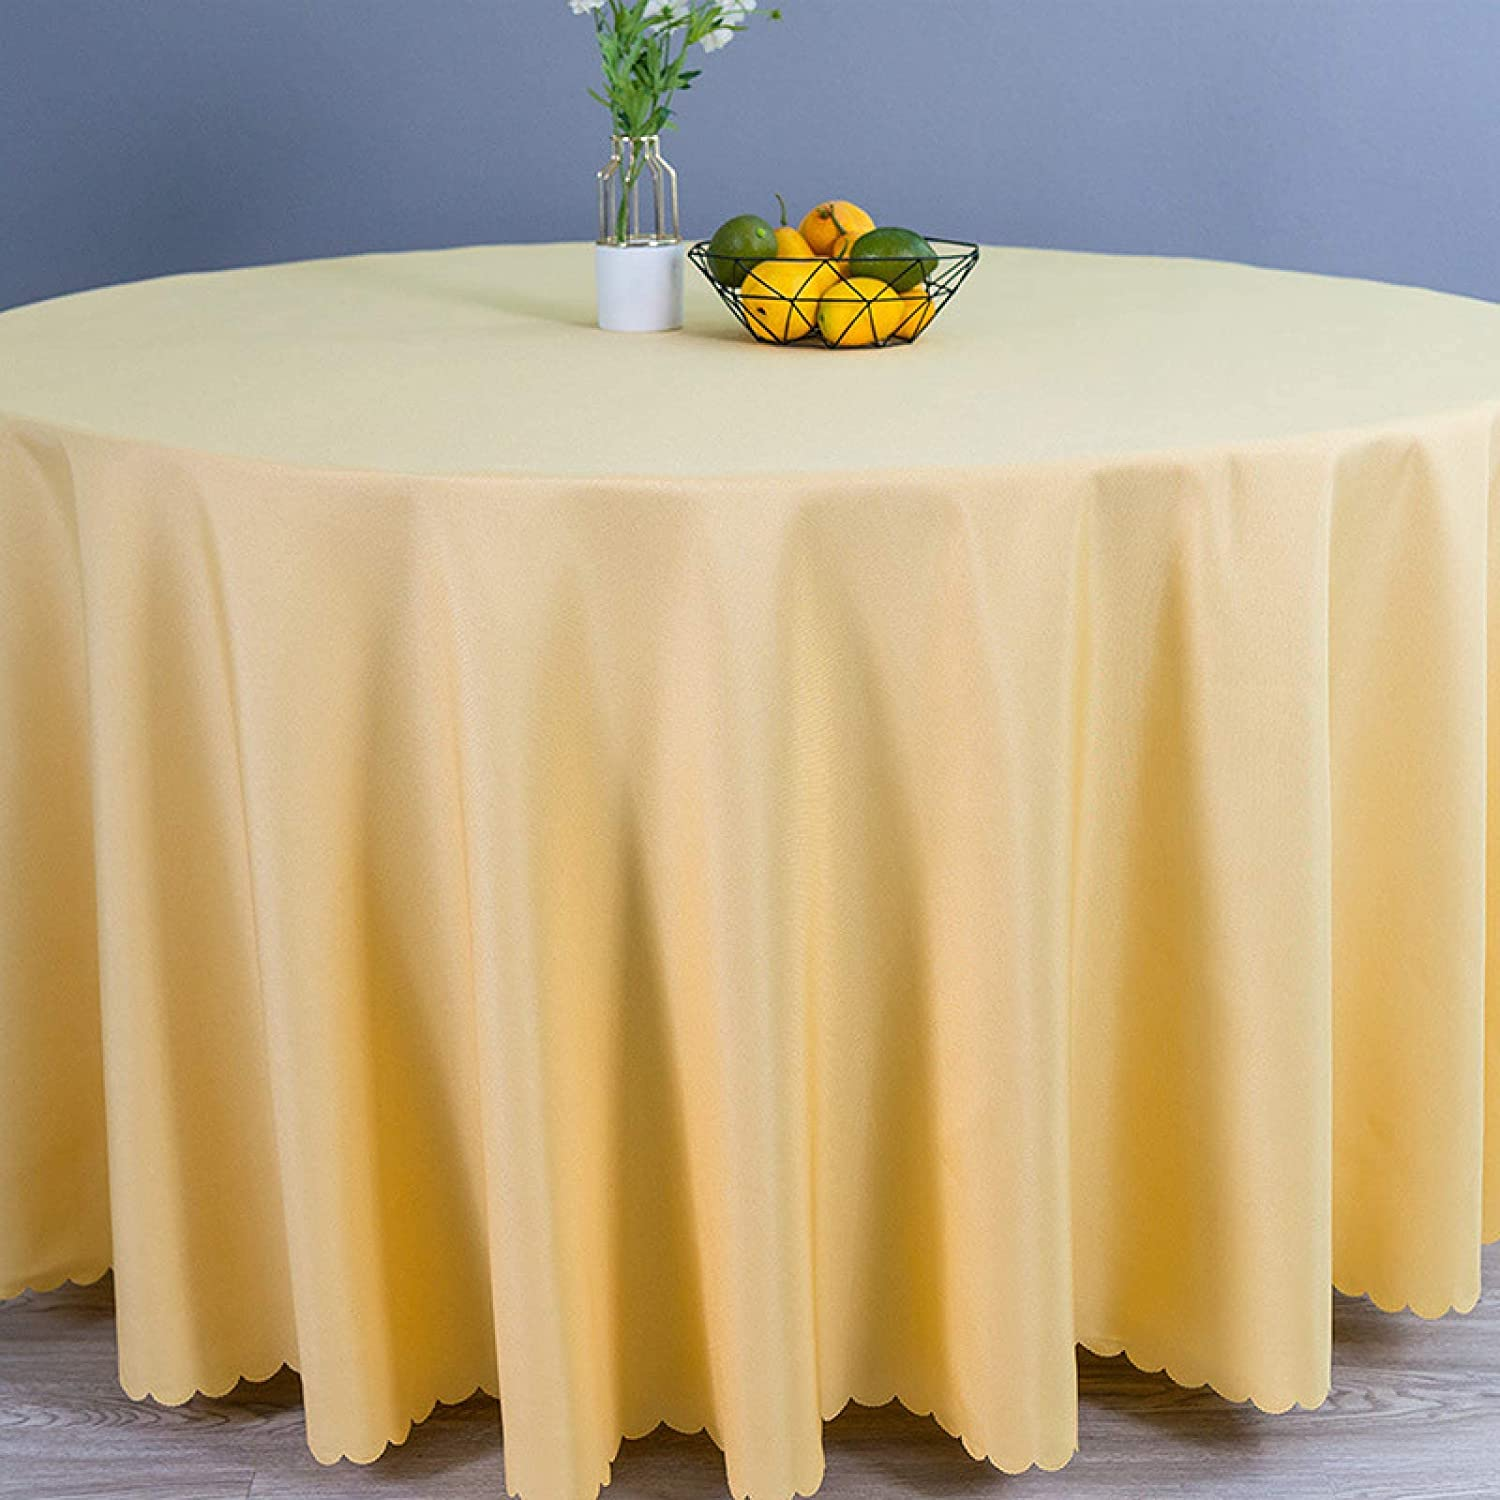 Tablecloths Cheap bargain Tablecloth Max 74% OFF Cotton Linen Wrinkle-Free Em Washable